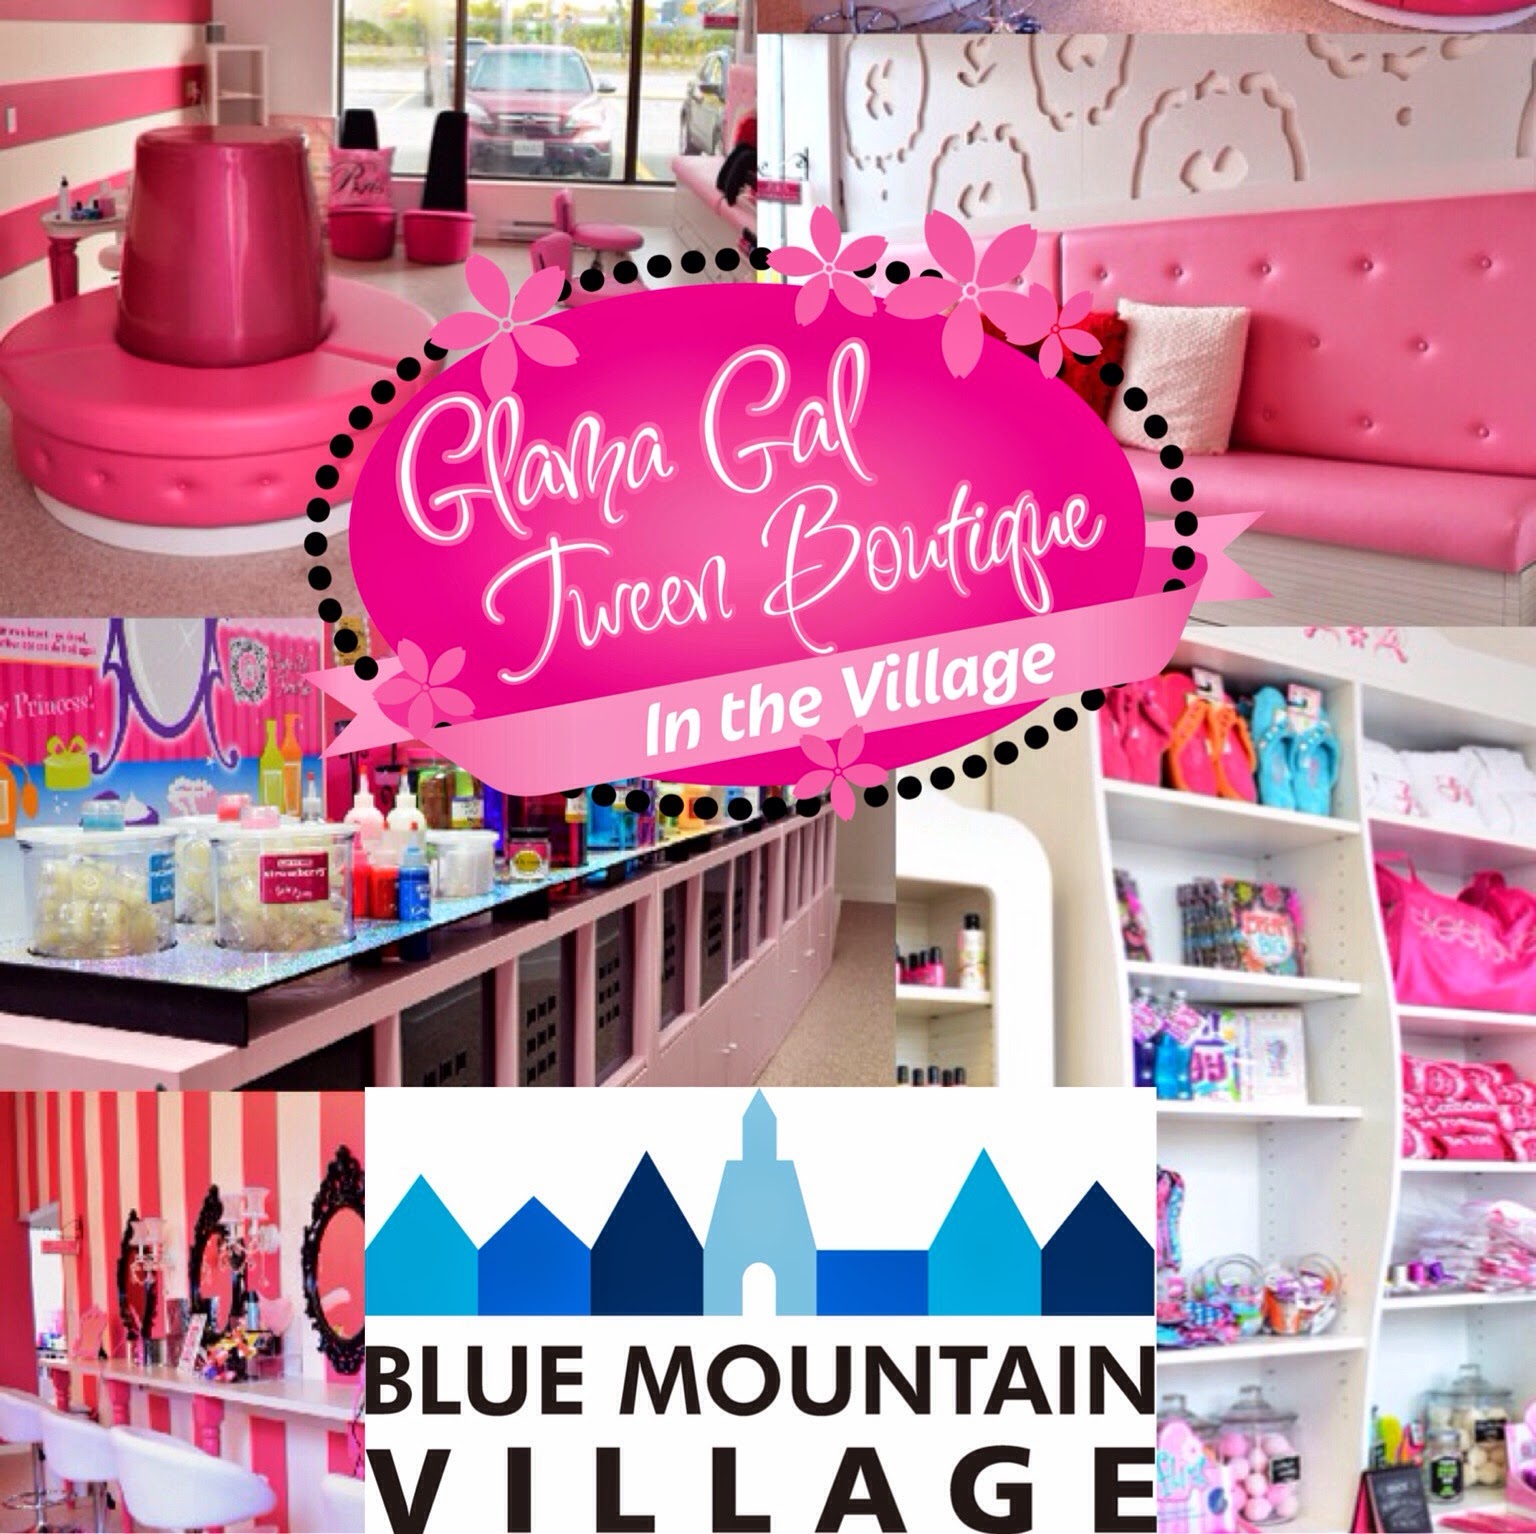 SIMPLY SUPPA Glama Gal Boutique to Open in Blue Mountain Village